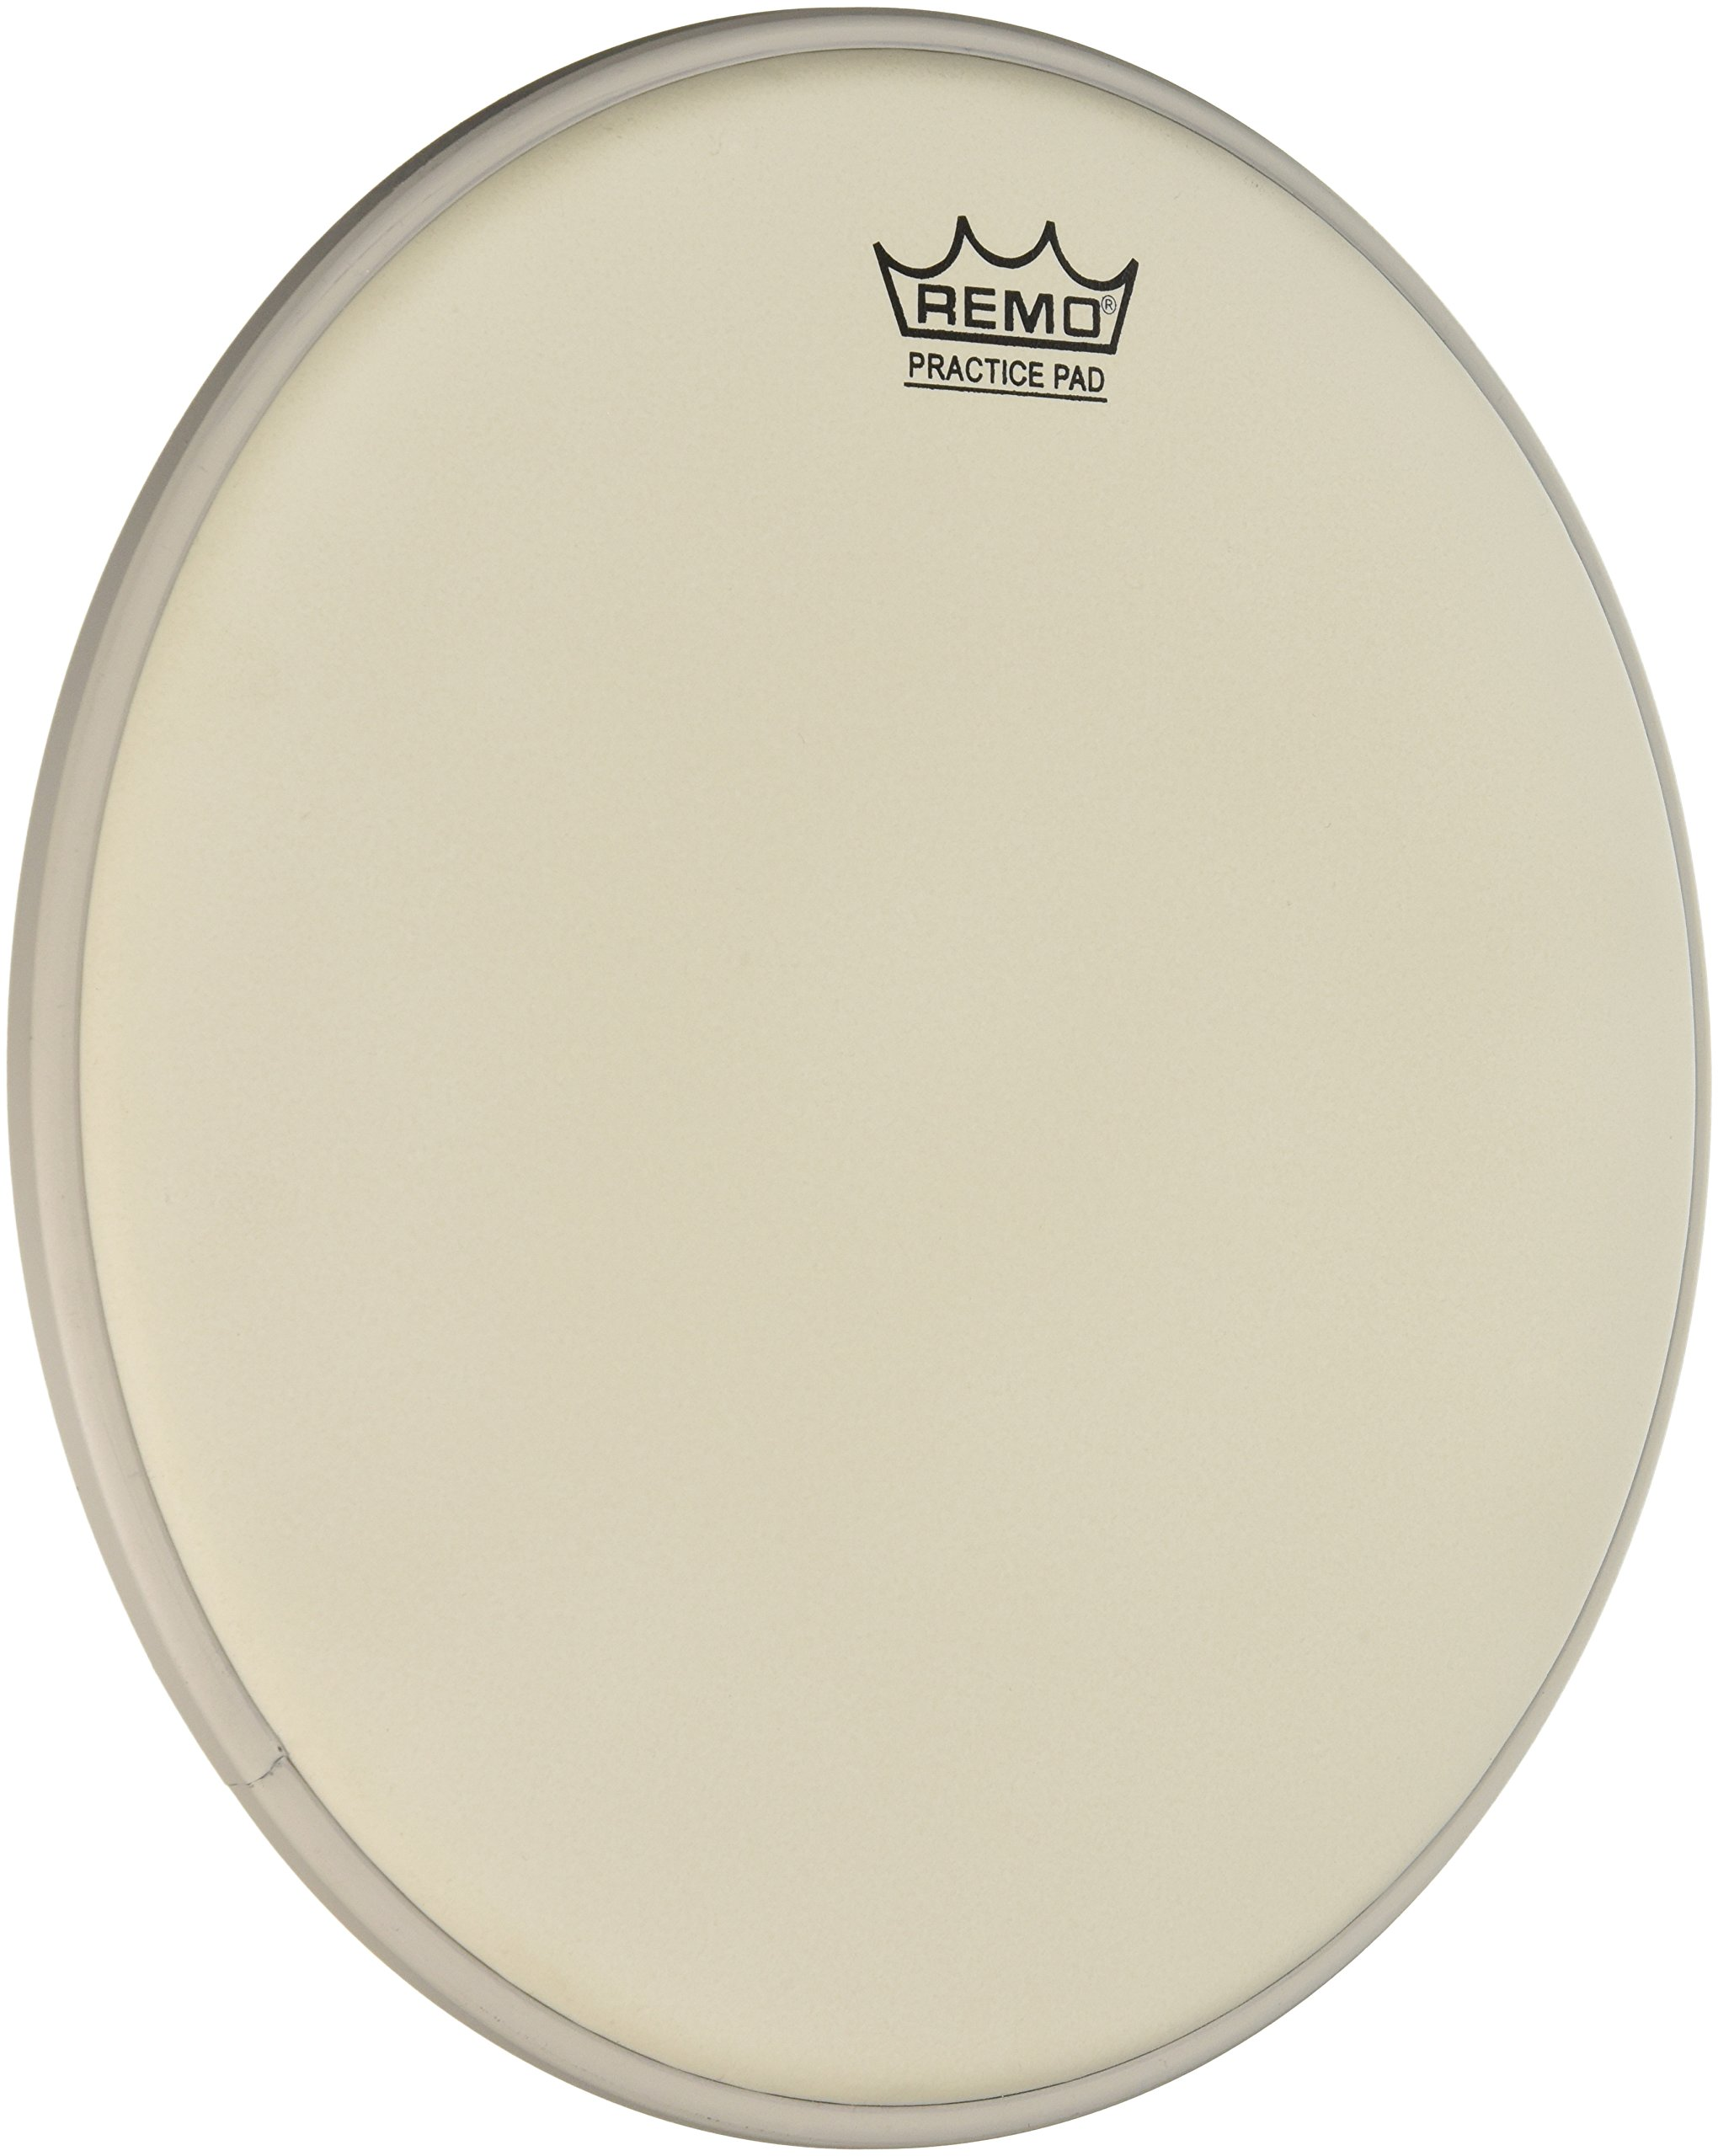 Remo Practice Pad Drumhead - Ambassador, Coated, 10''